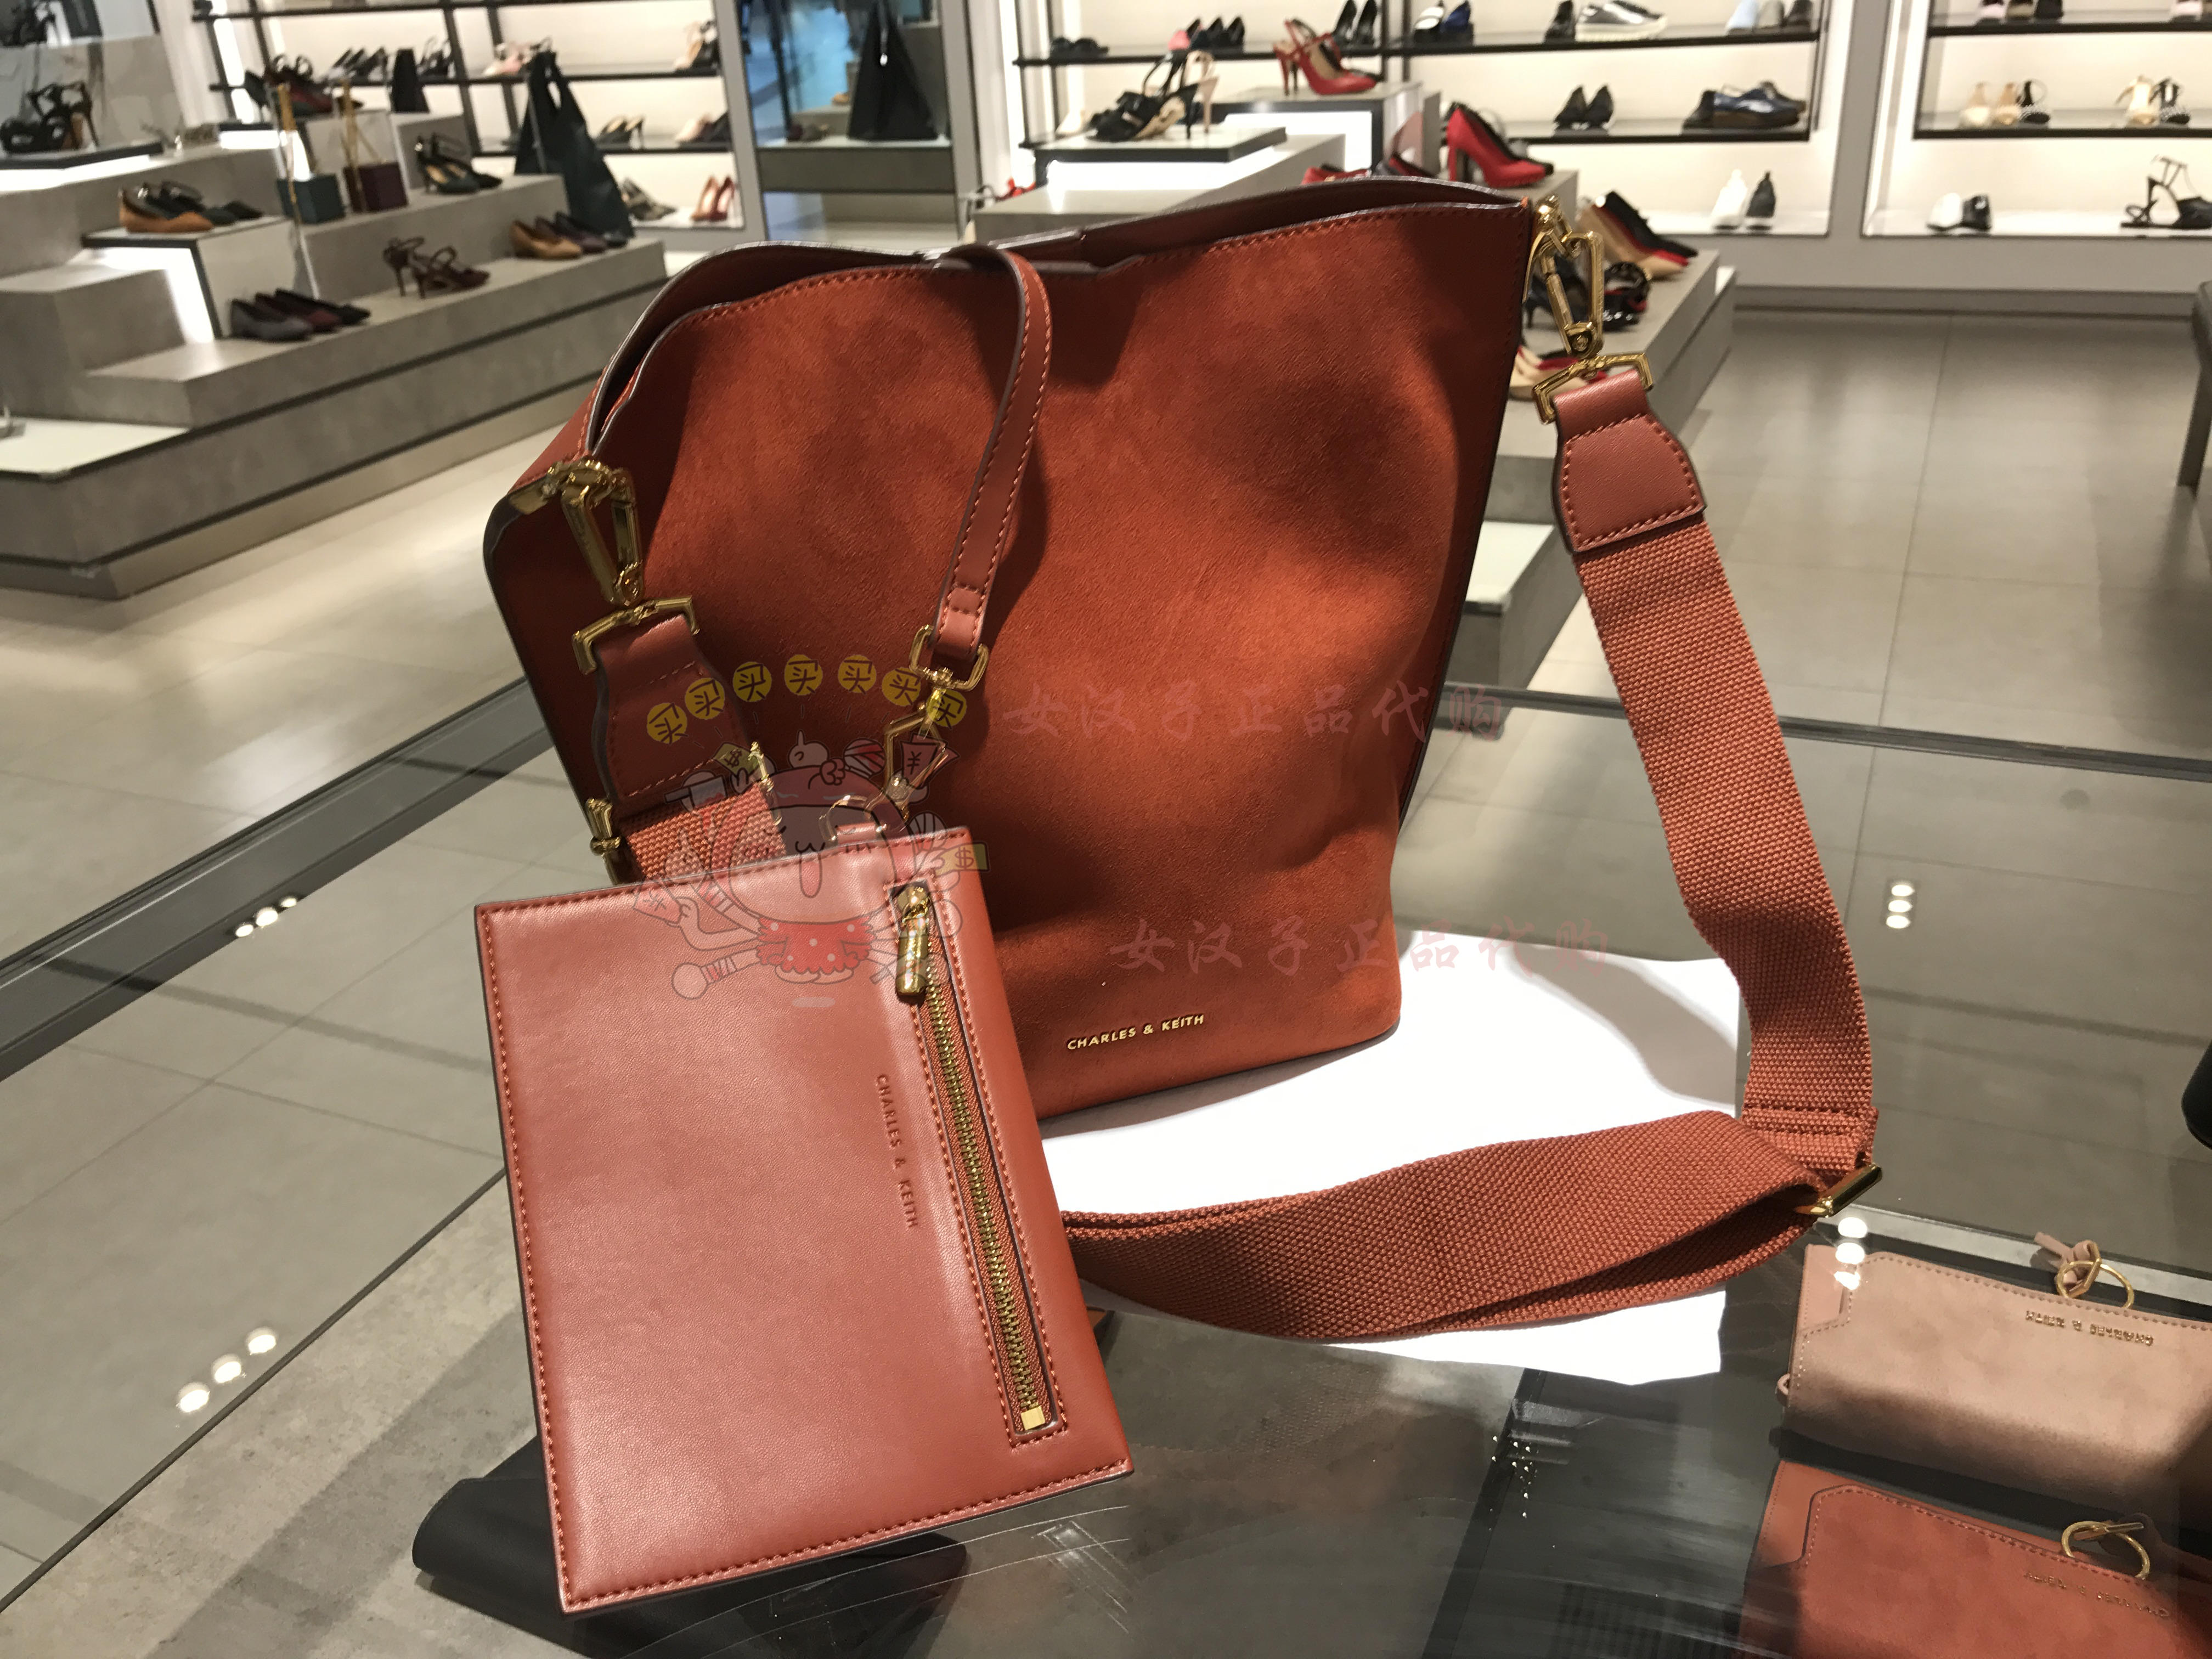 Usd 10465 Can Be Returned2017 Models Charles Keith Shoulder Bag Ampamp Mini Messenger Lightbox Moreview